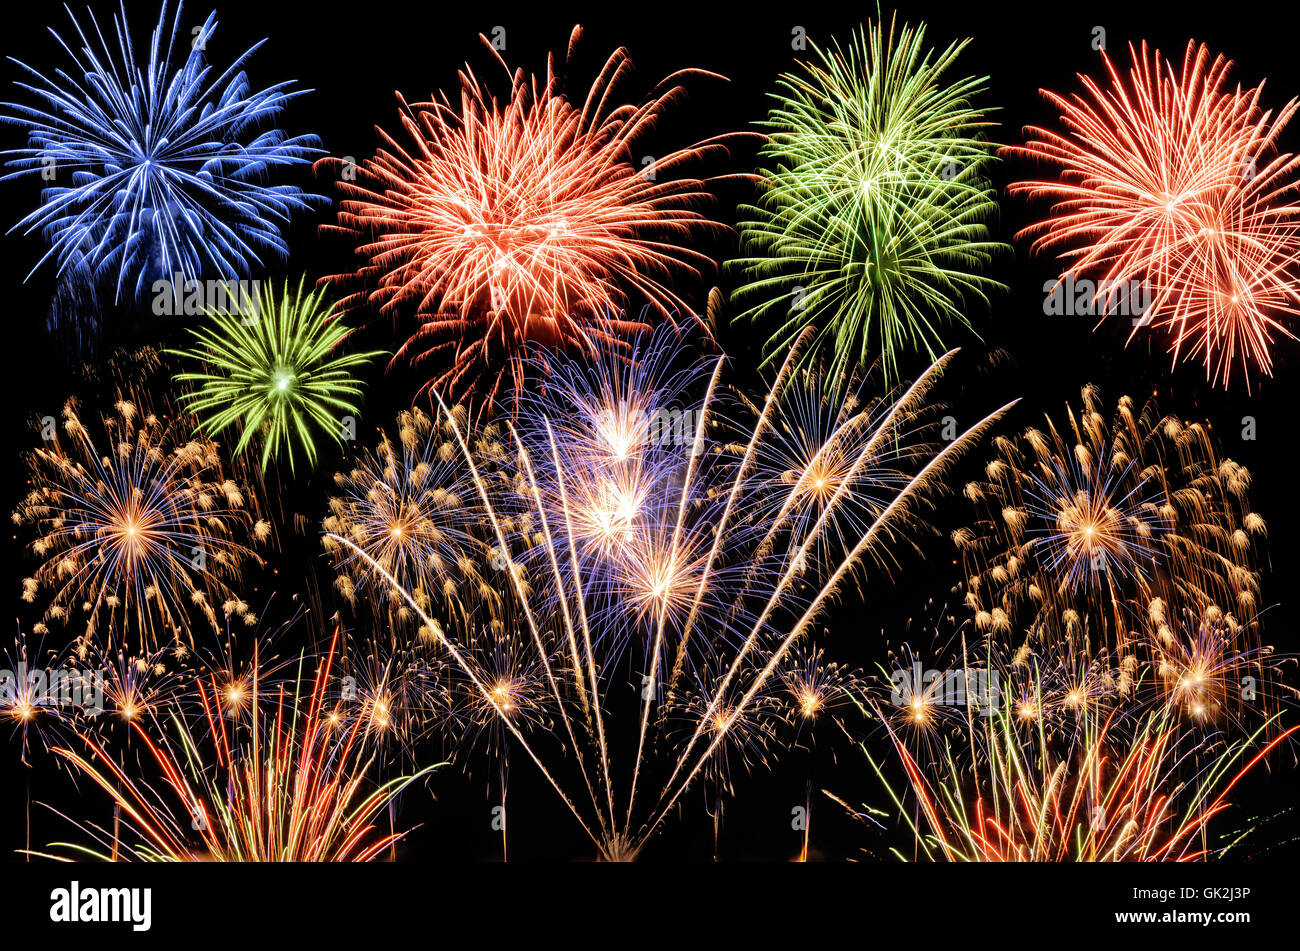 fireworks spectacle - Stock Image